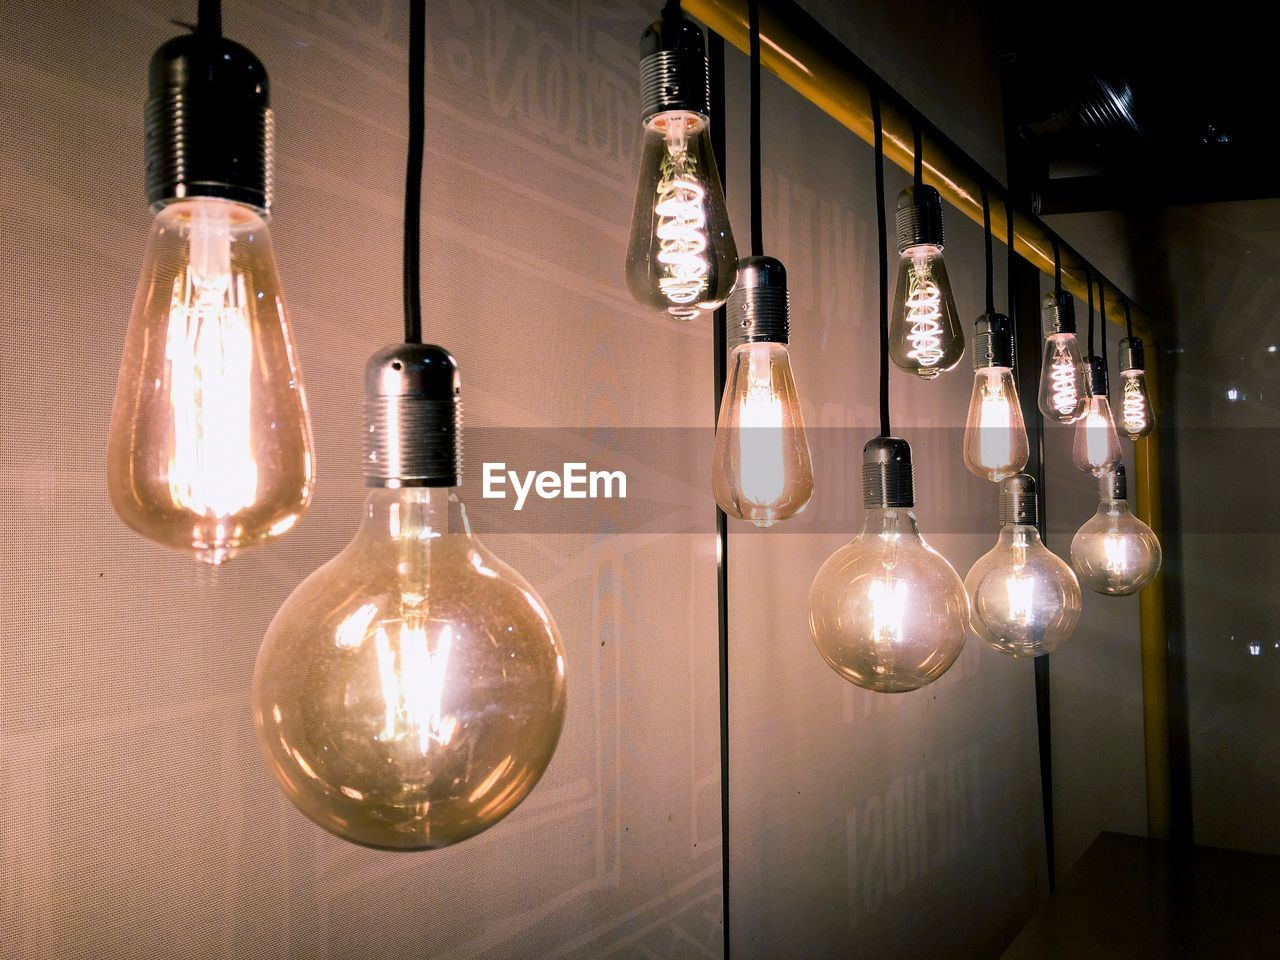 Illuminated light bulbs hanging on wall